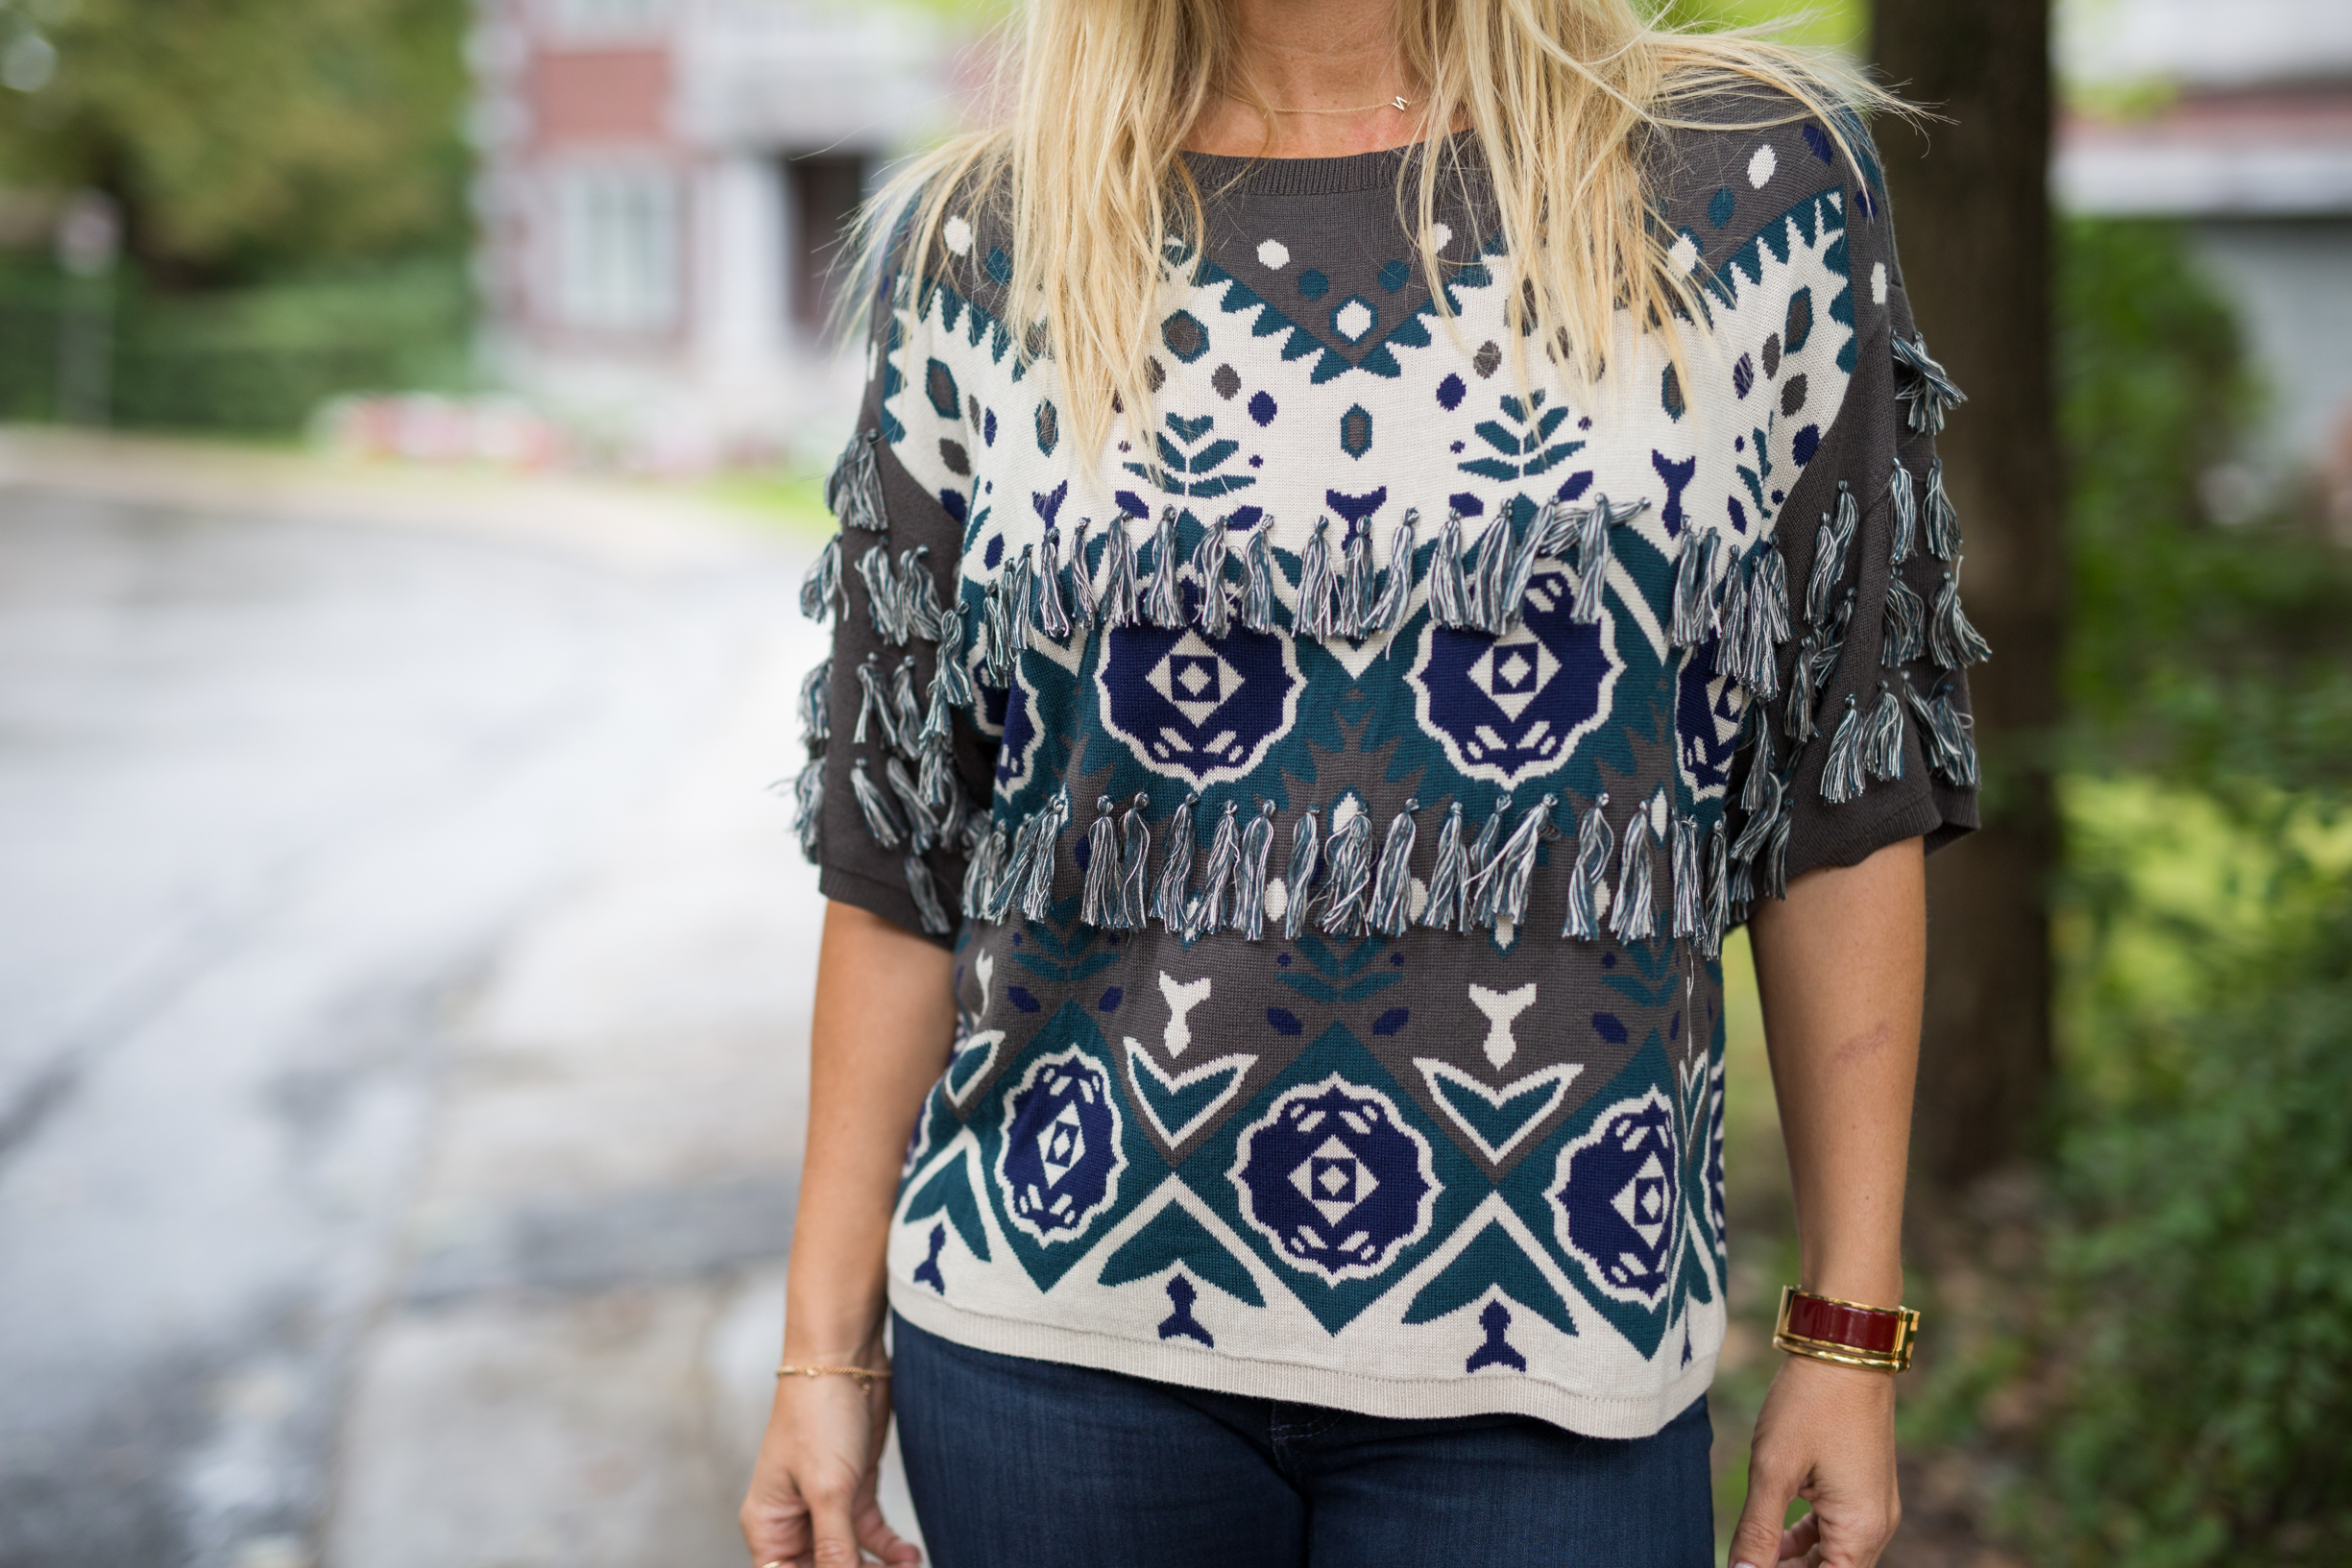 gypsy 05 shirt on mademoiselle jules Canadian blogger